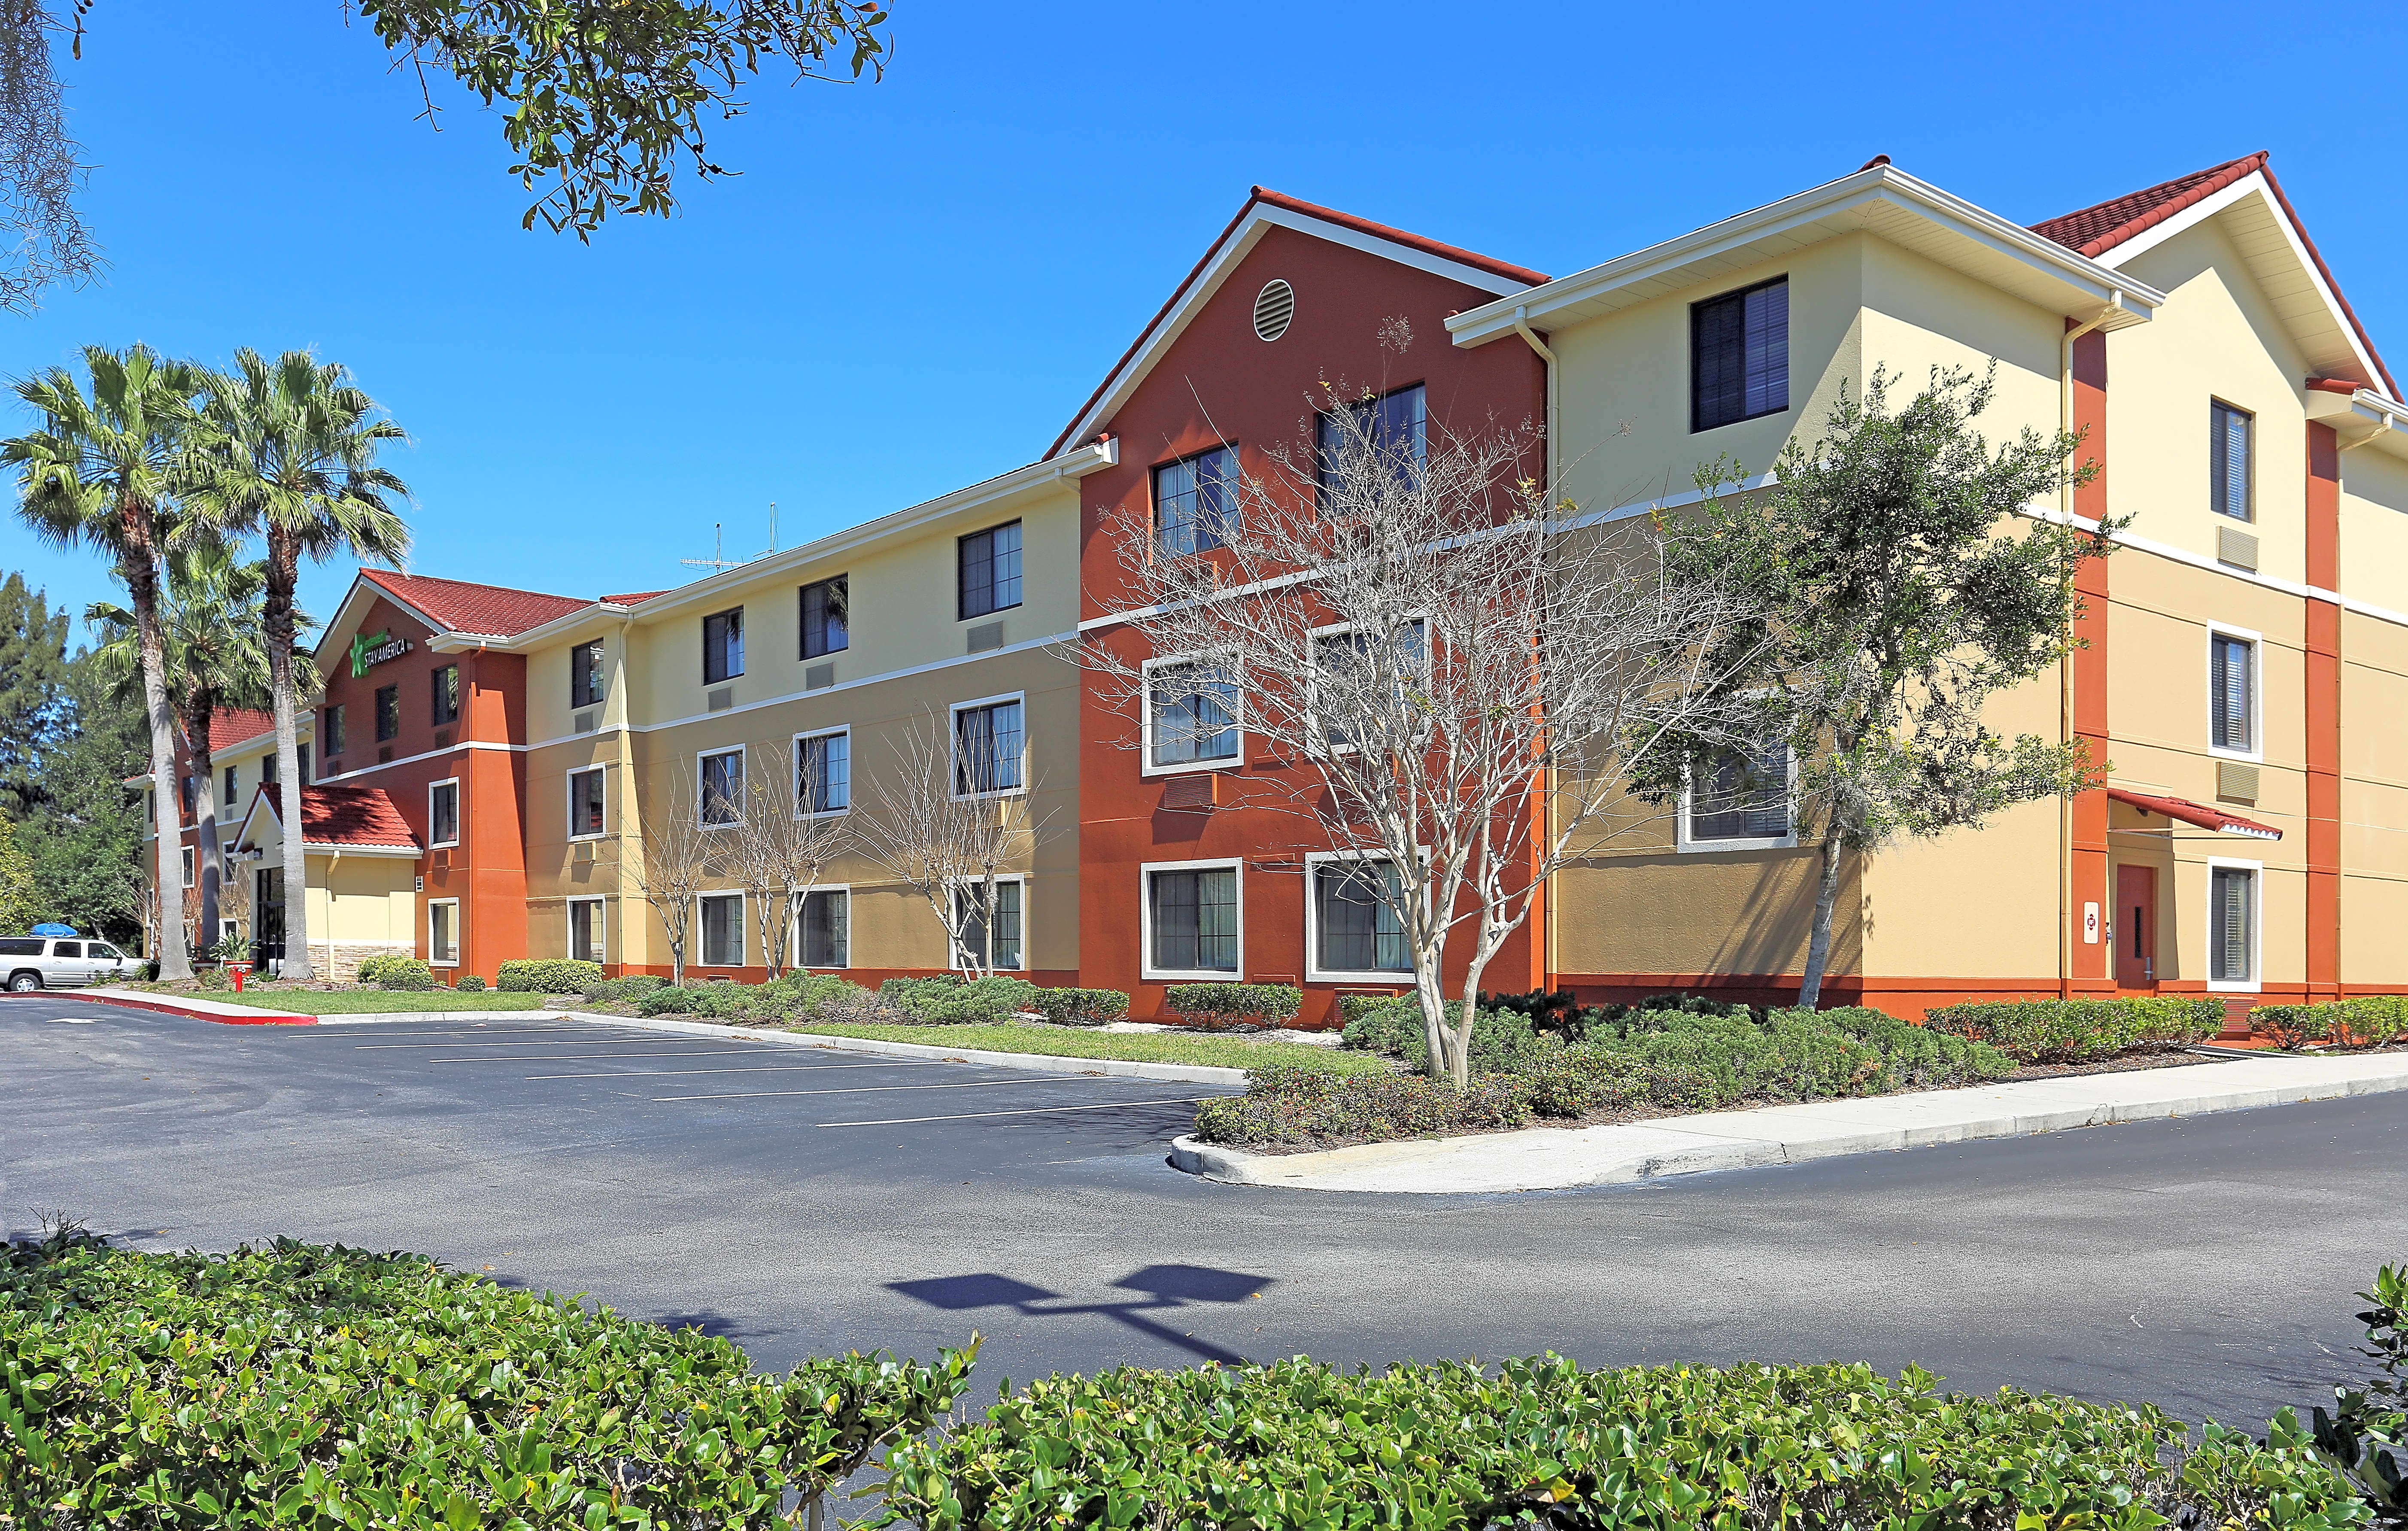 Apartments Near Florida Tech Furnished Studio - Melbourne - Airport for Florida Institute of Technology Students in Melbourne, FL